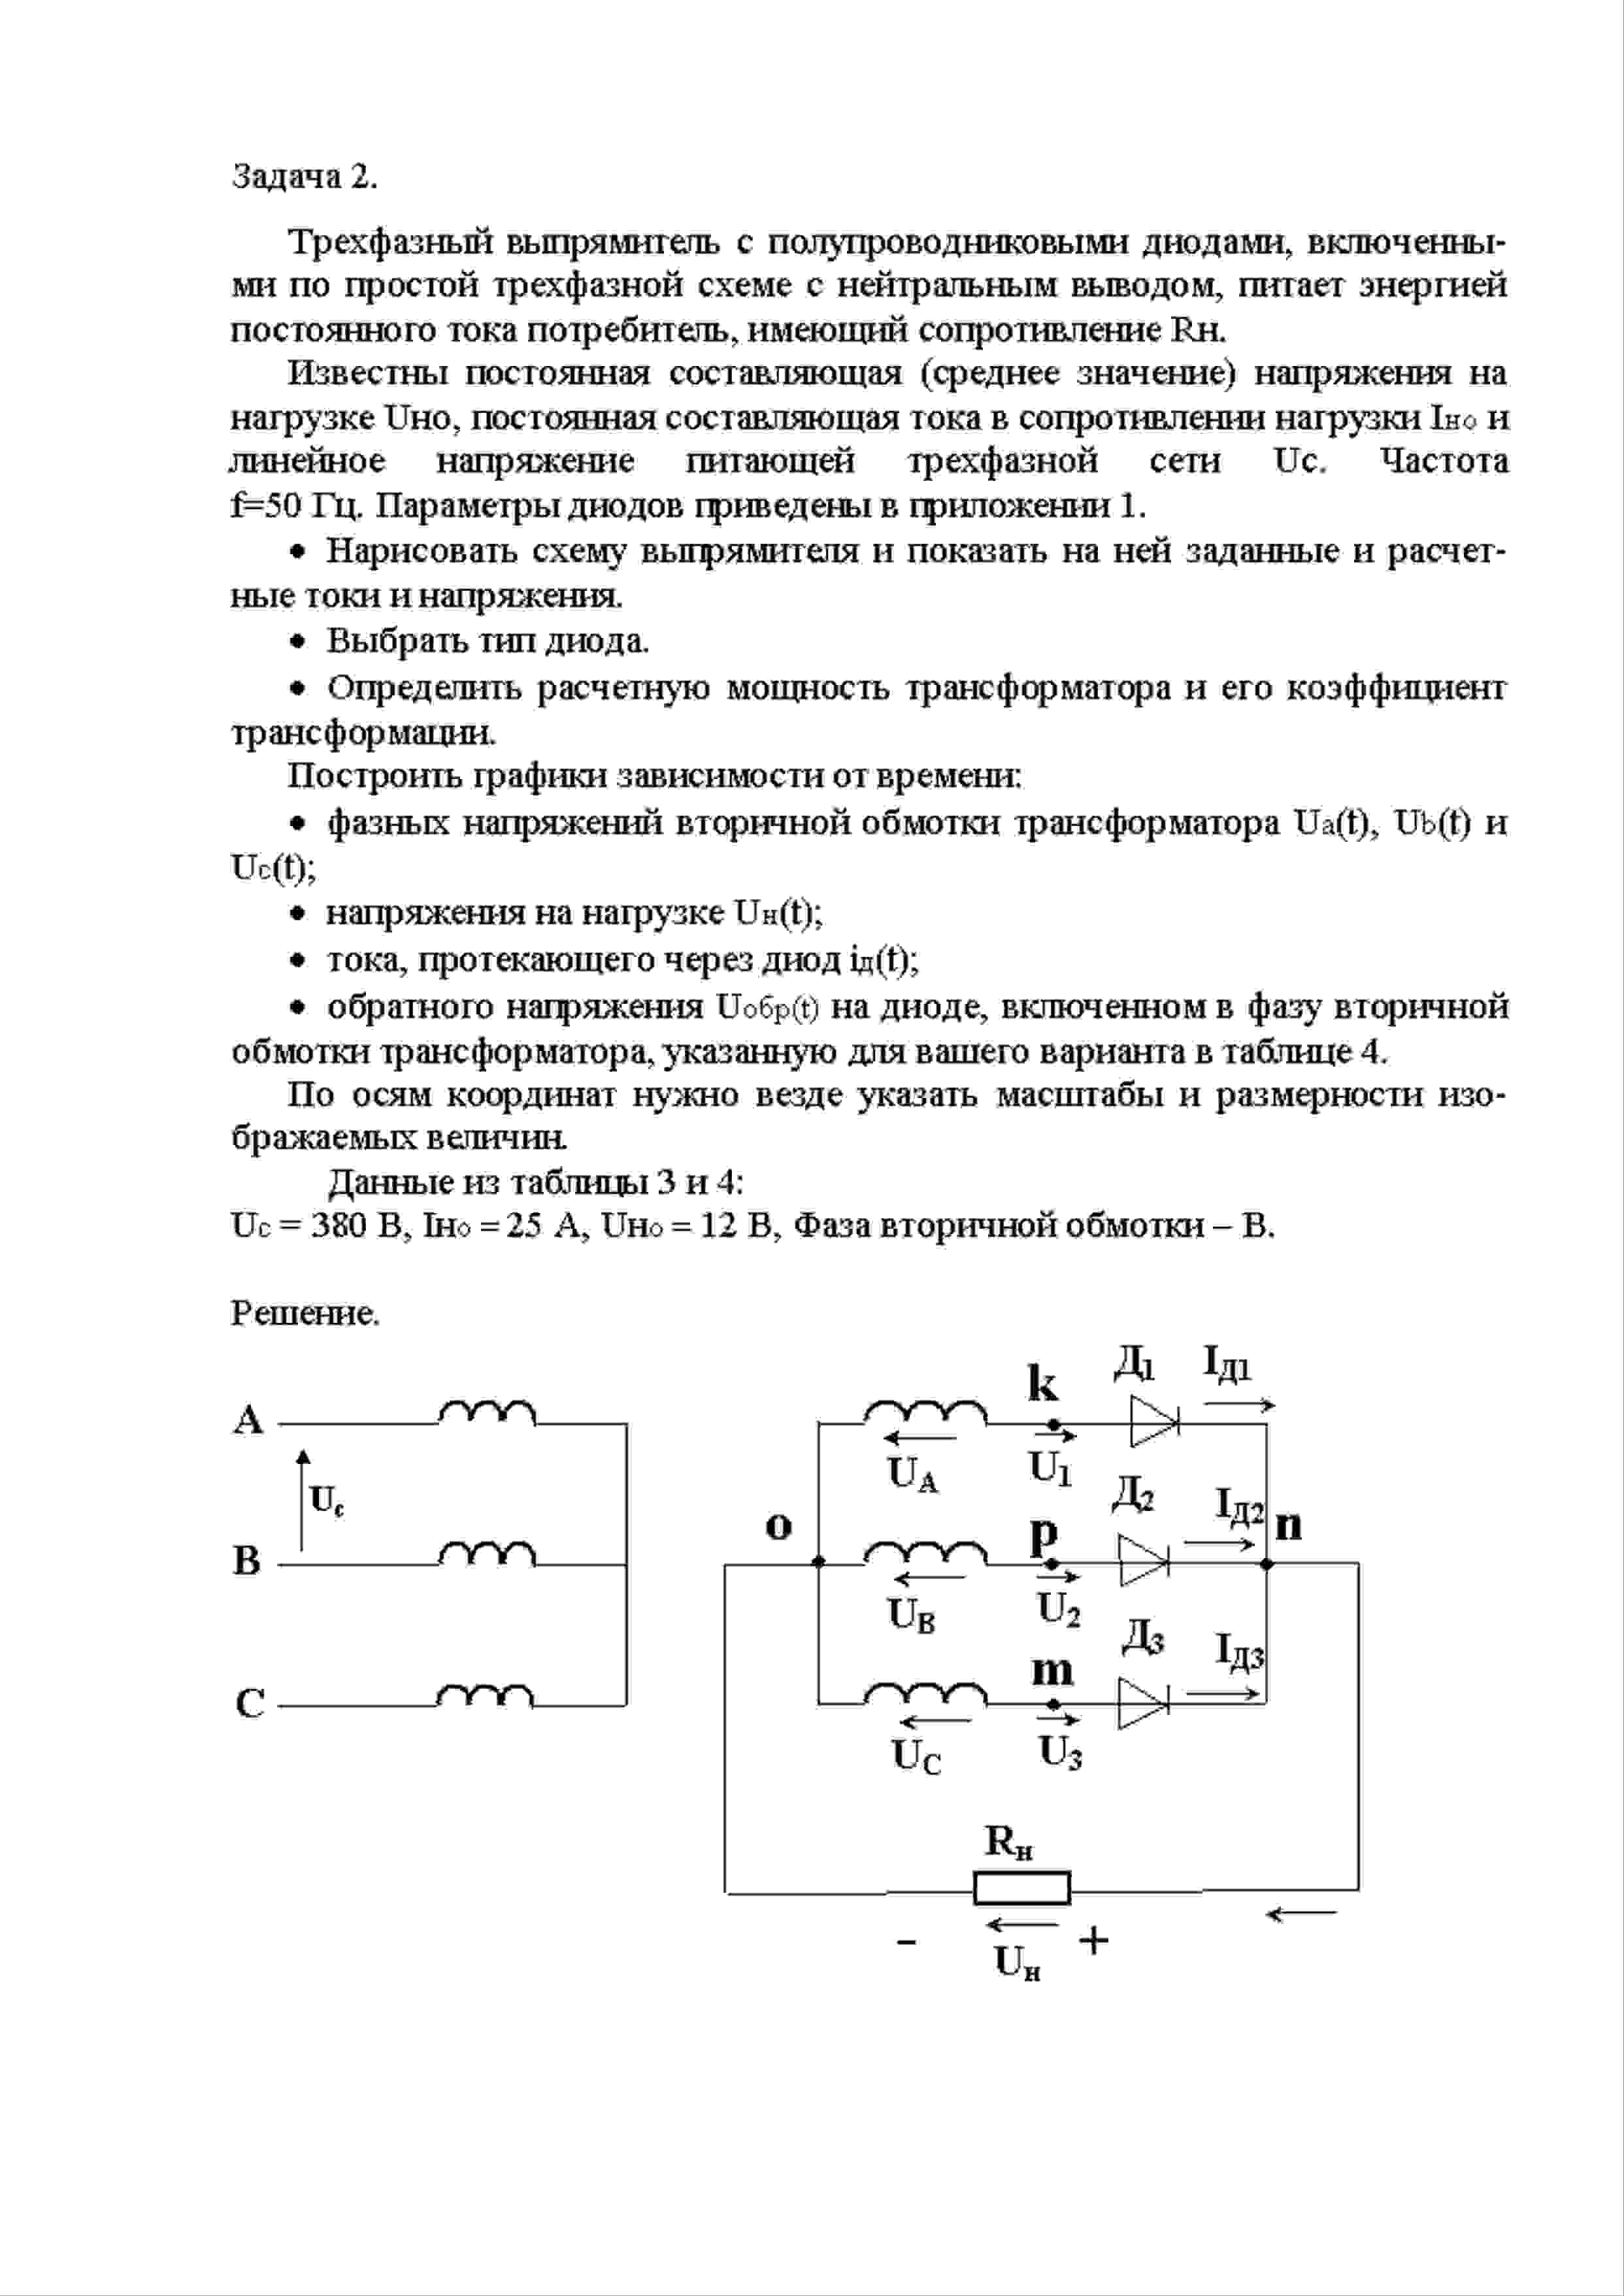 Examination of Electrical MSUTM version 72